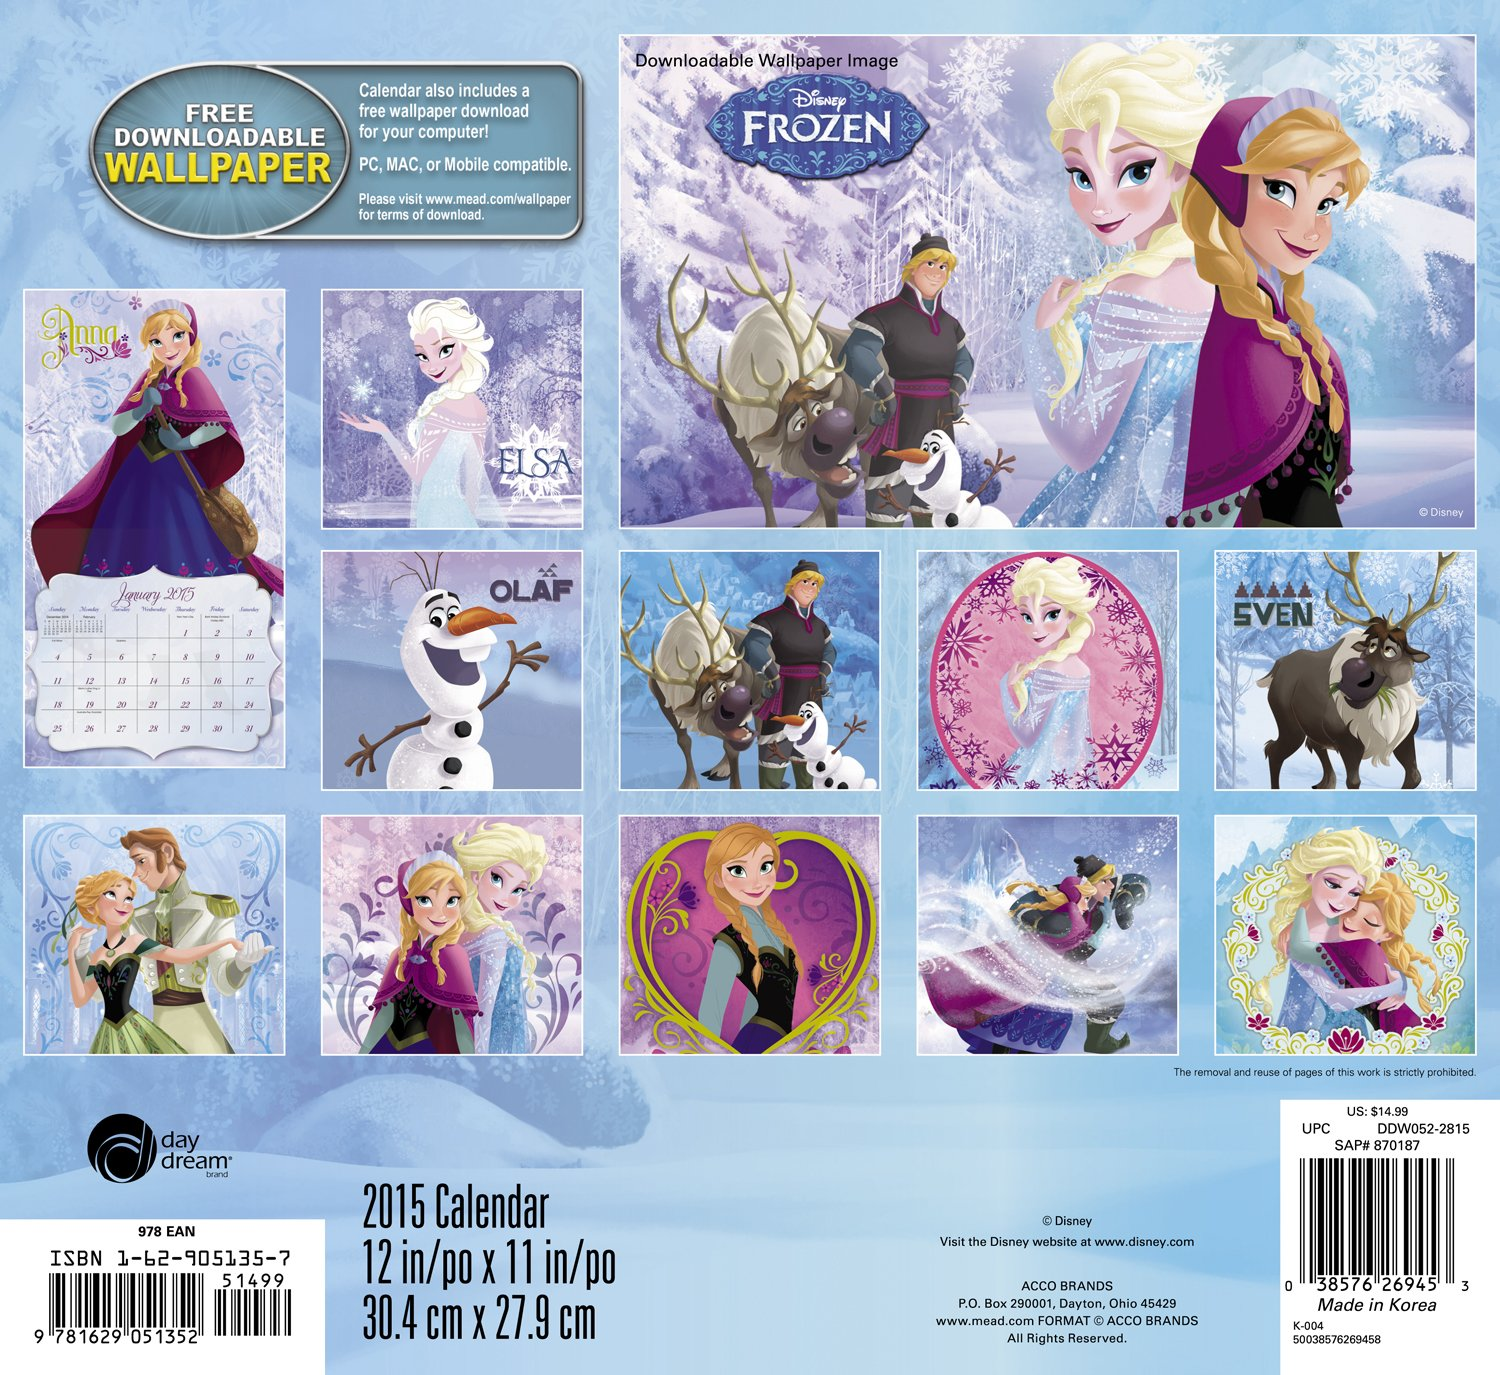 Disney Frozen Yearly Calendar Printable Digital File Image 92 Pictures ...